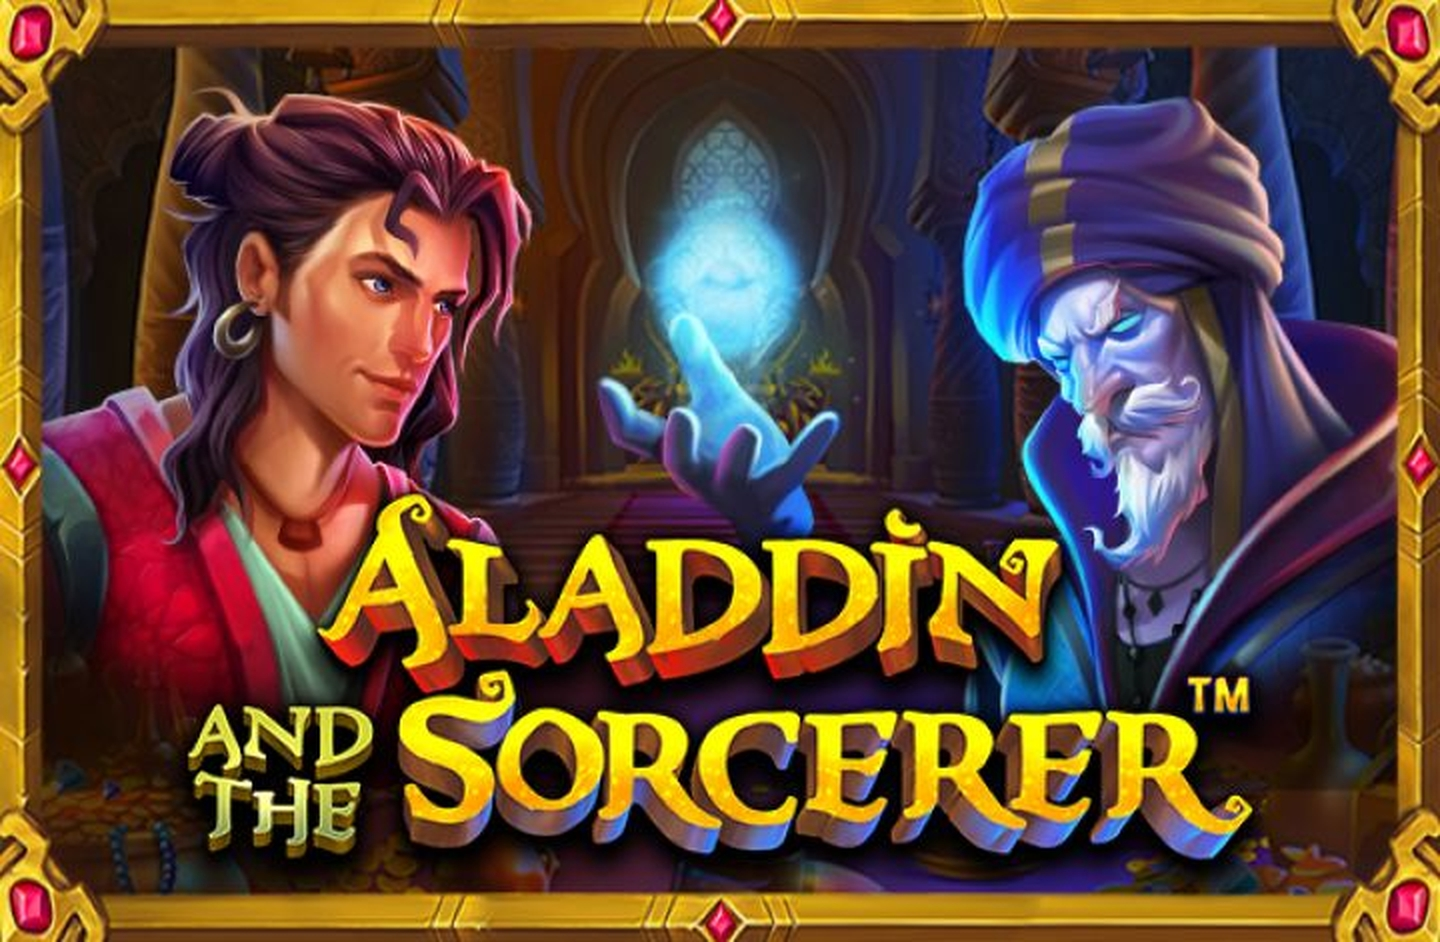 The Aladdin and the Sorcerer Online Slot Demo Game by Pragmatic Play